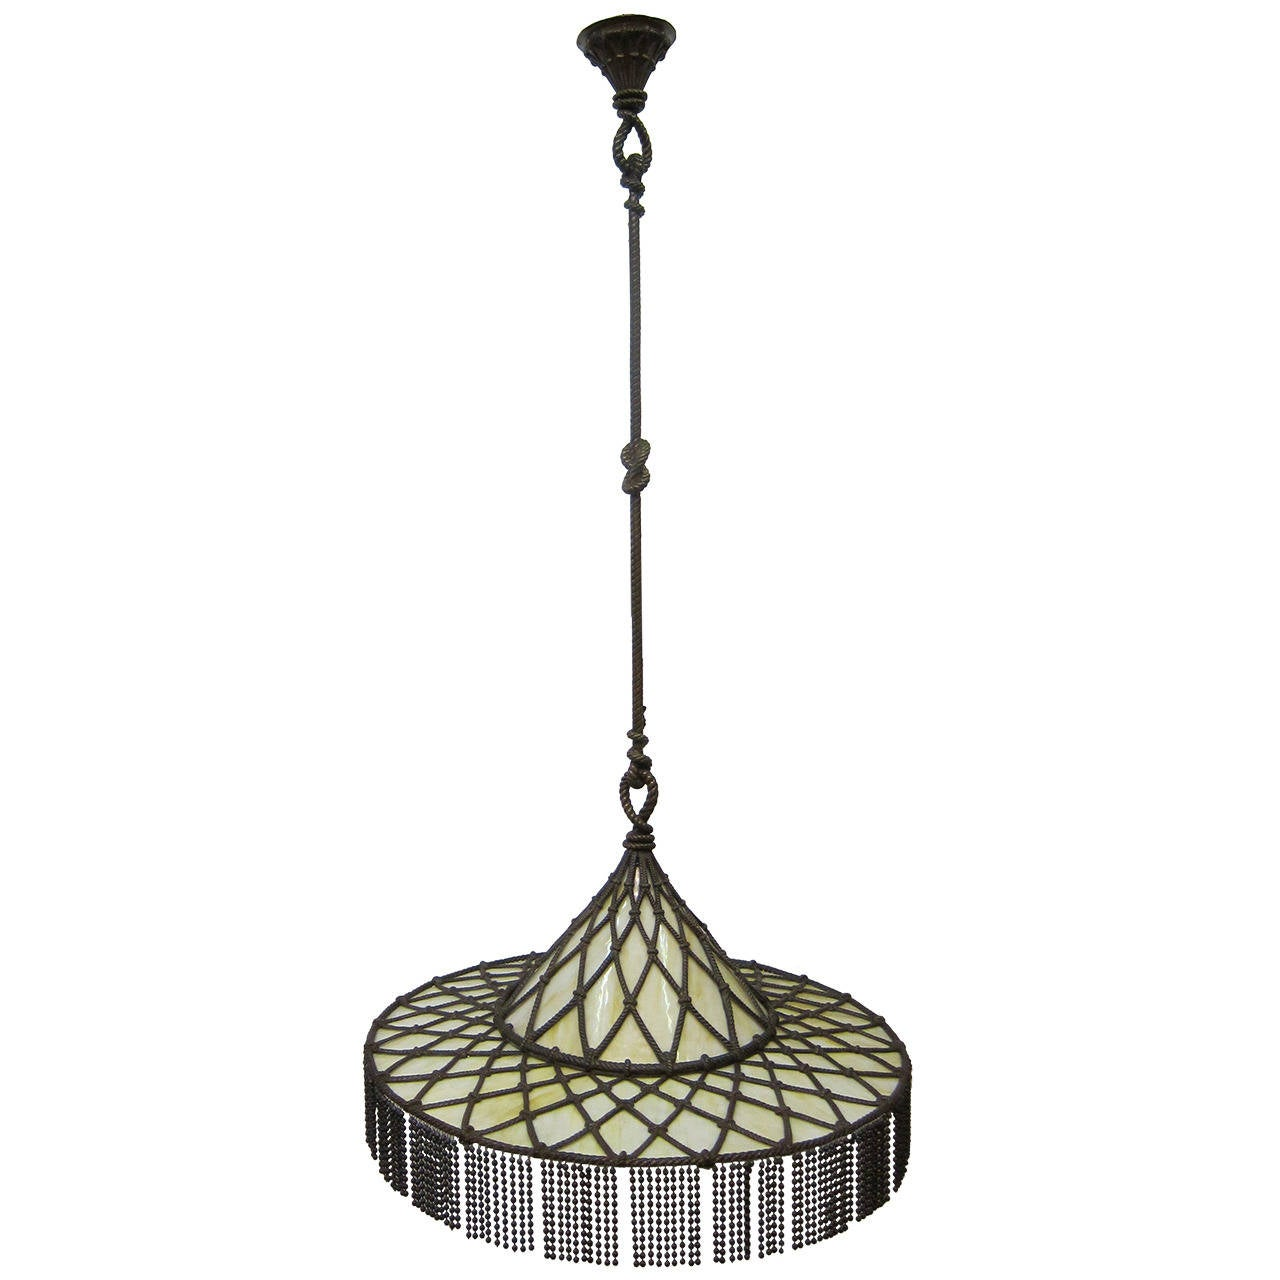 vintasge arts and crafts light fixture in bronze and glass. Black Bedroom Furniture Sets. Home Design Ideas